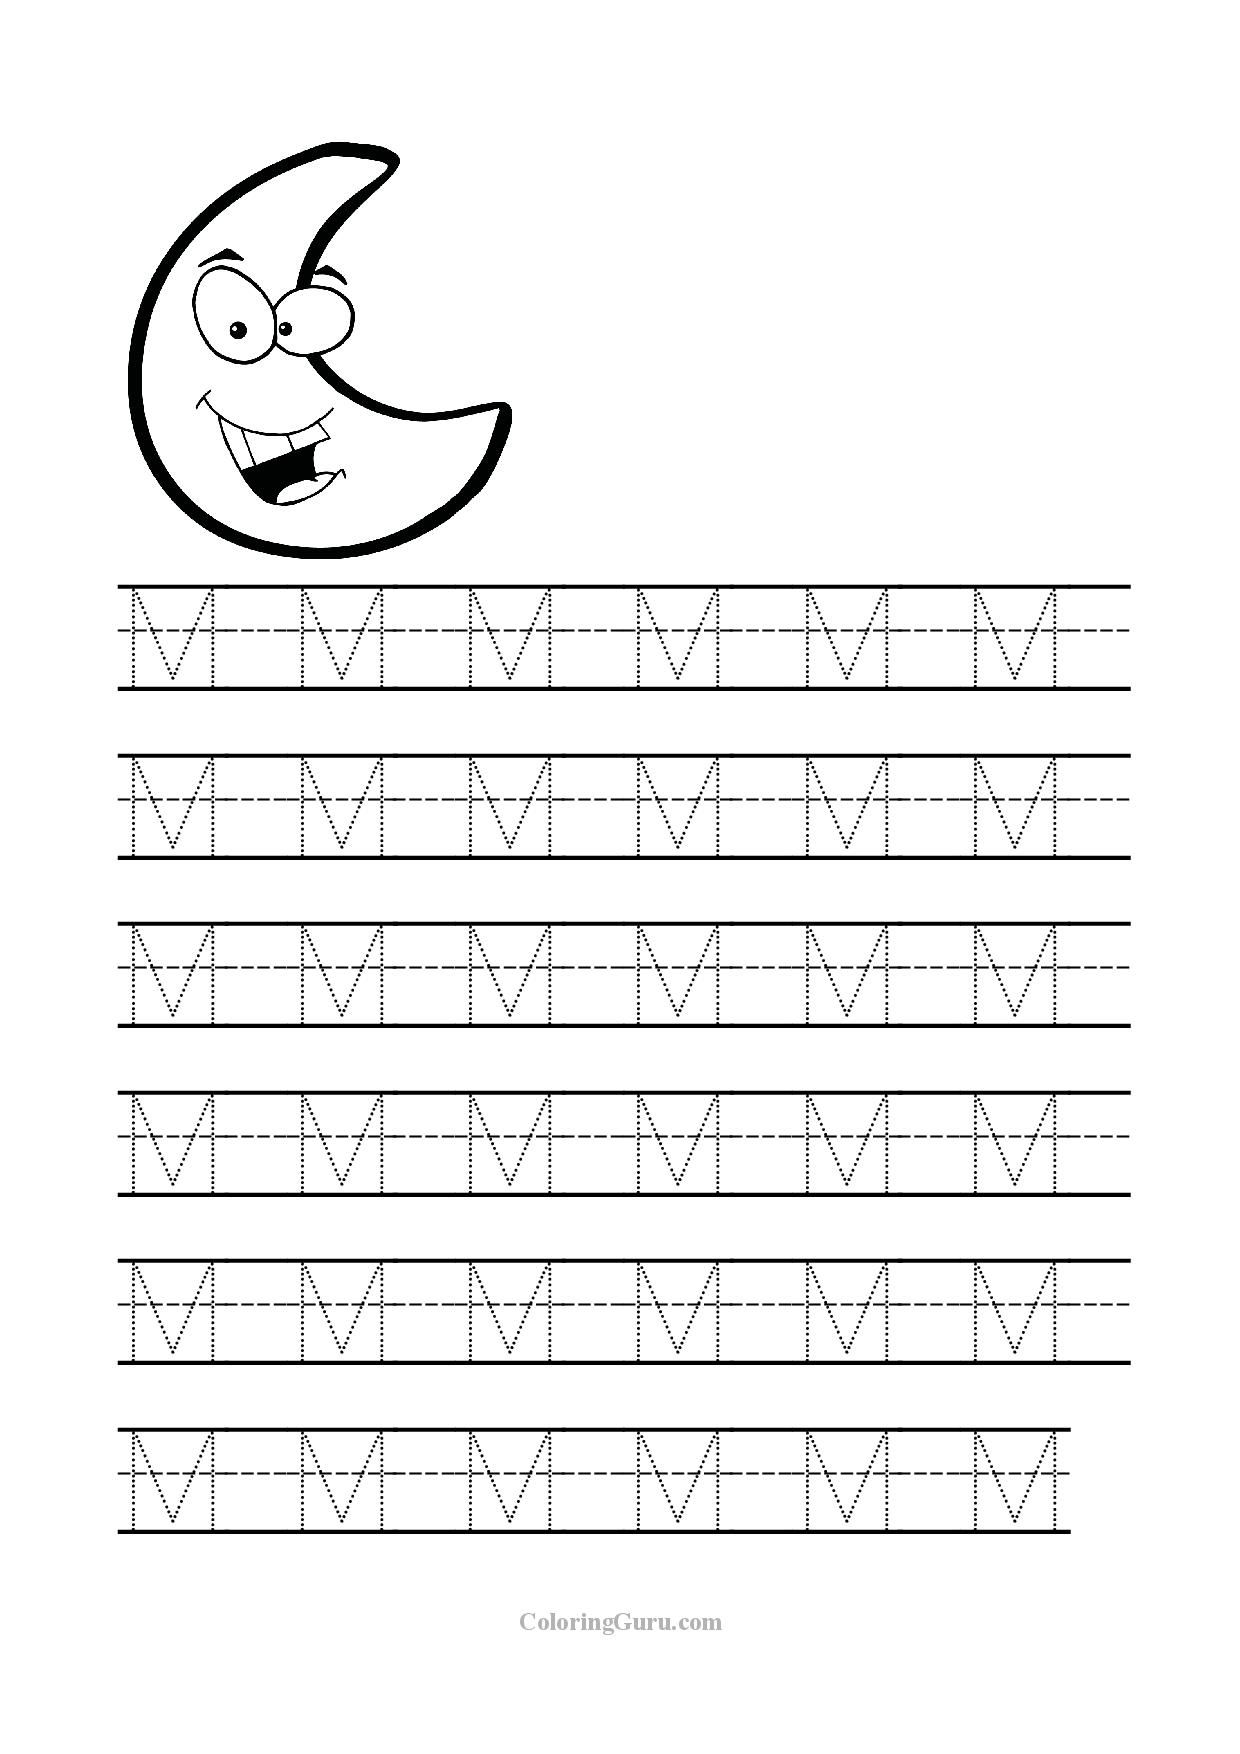 free printable tracing letter m worksheets for preschool sometimes i wish i was an ot. Black Bedroom Furniture Sets. Home Design Ideas